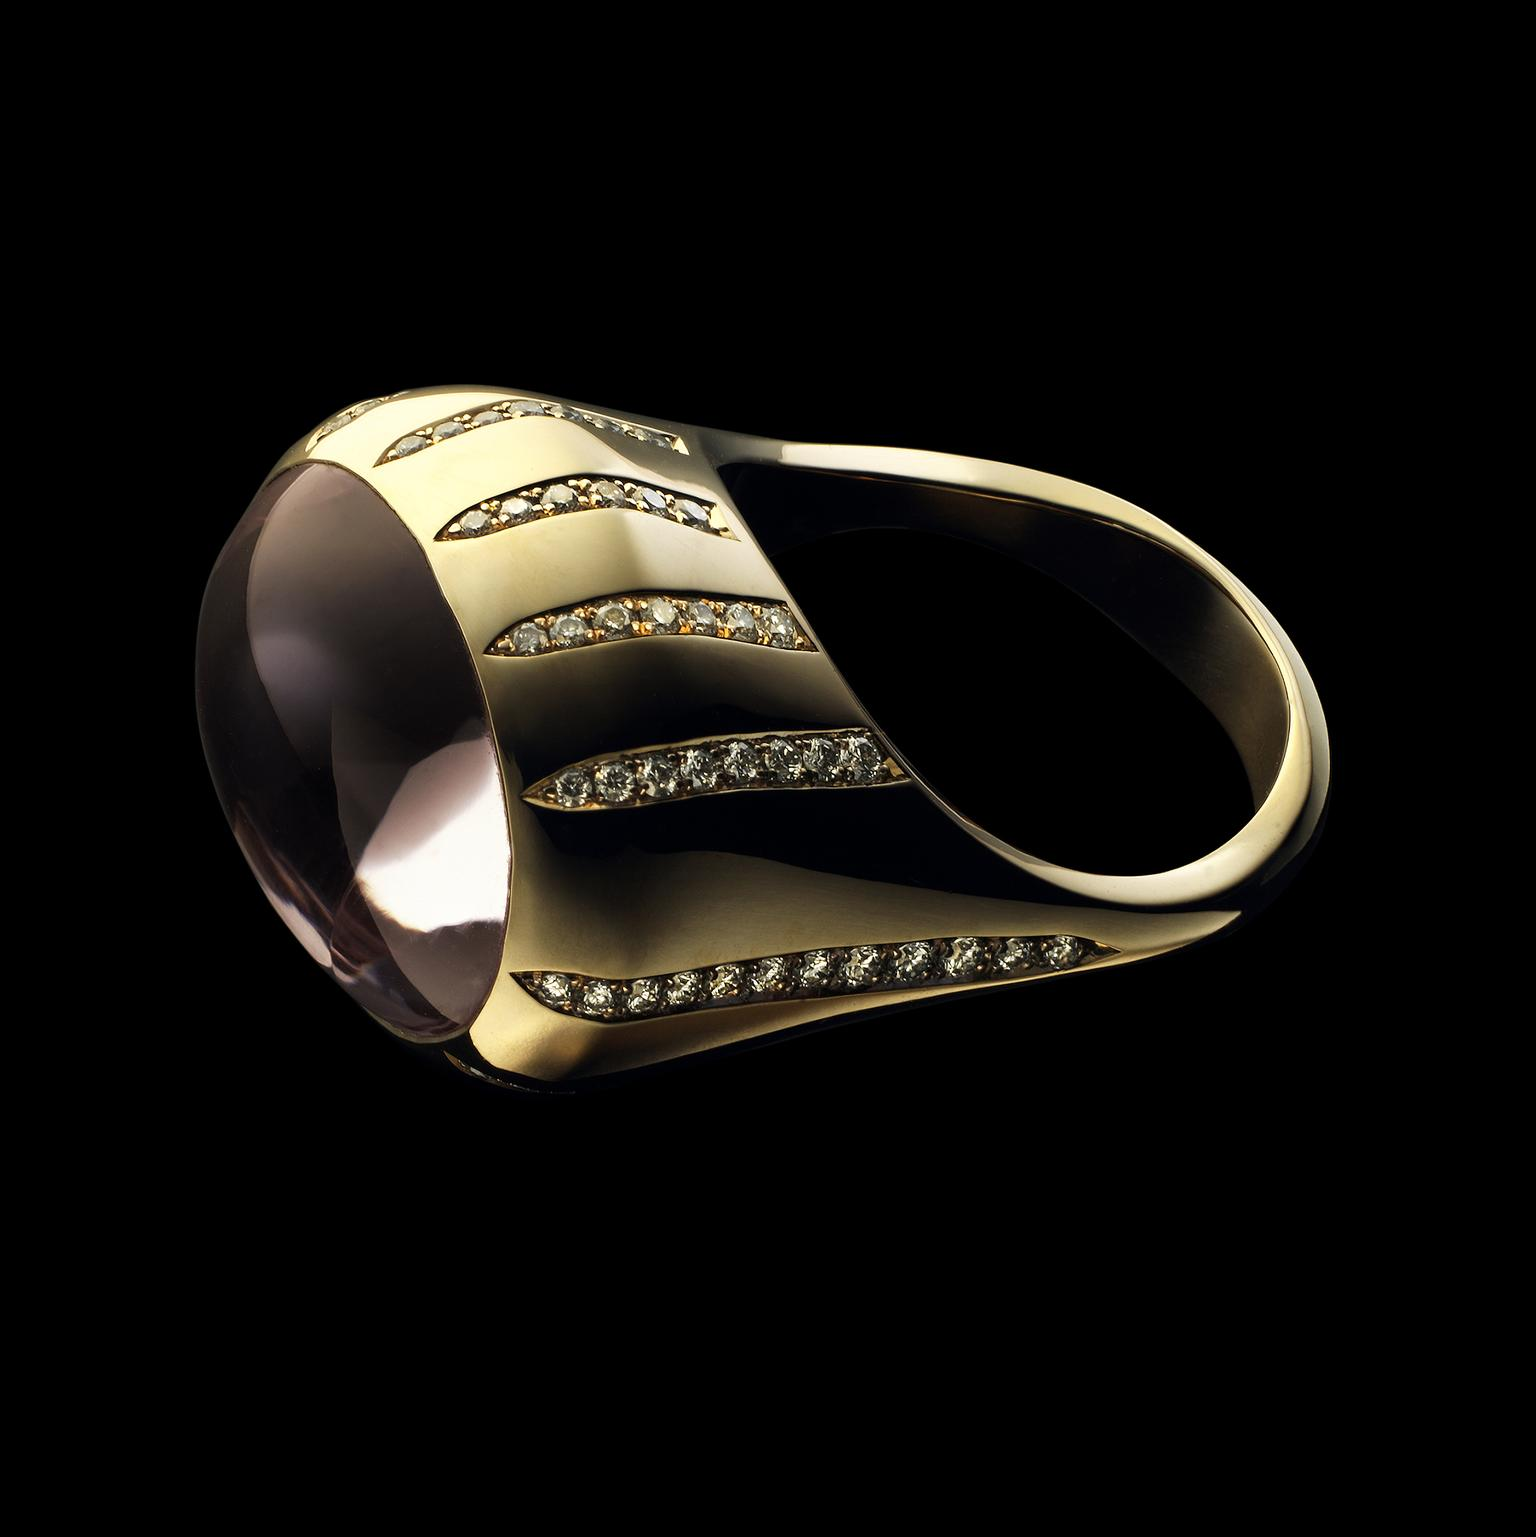 Ben Day Studio 54 ring